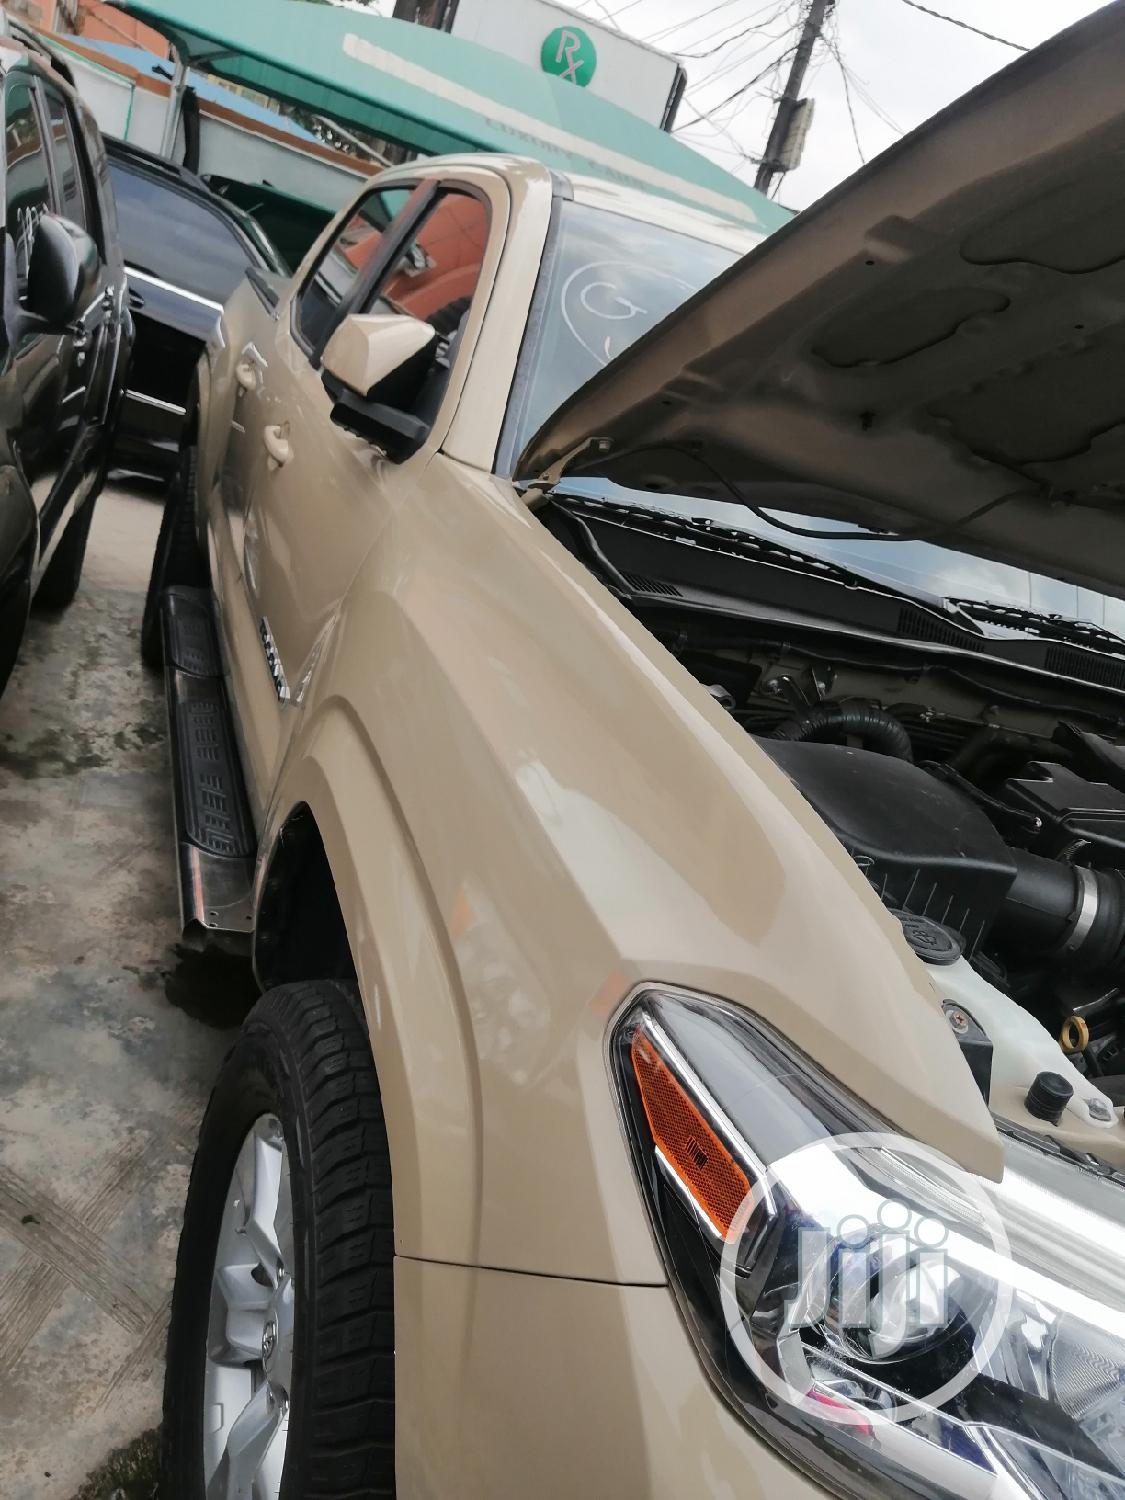 Toyota Tacoma 2016 4dr Double Cab Beige | Cars for sale in Ikeja, Lagos State, Nigeria